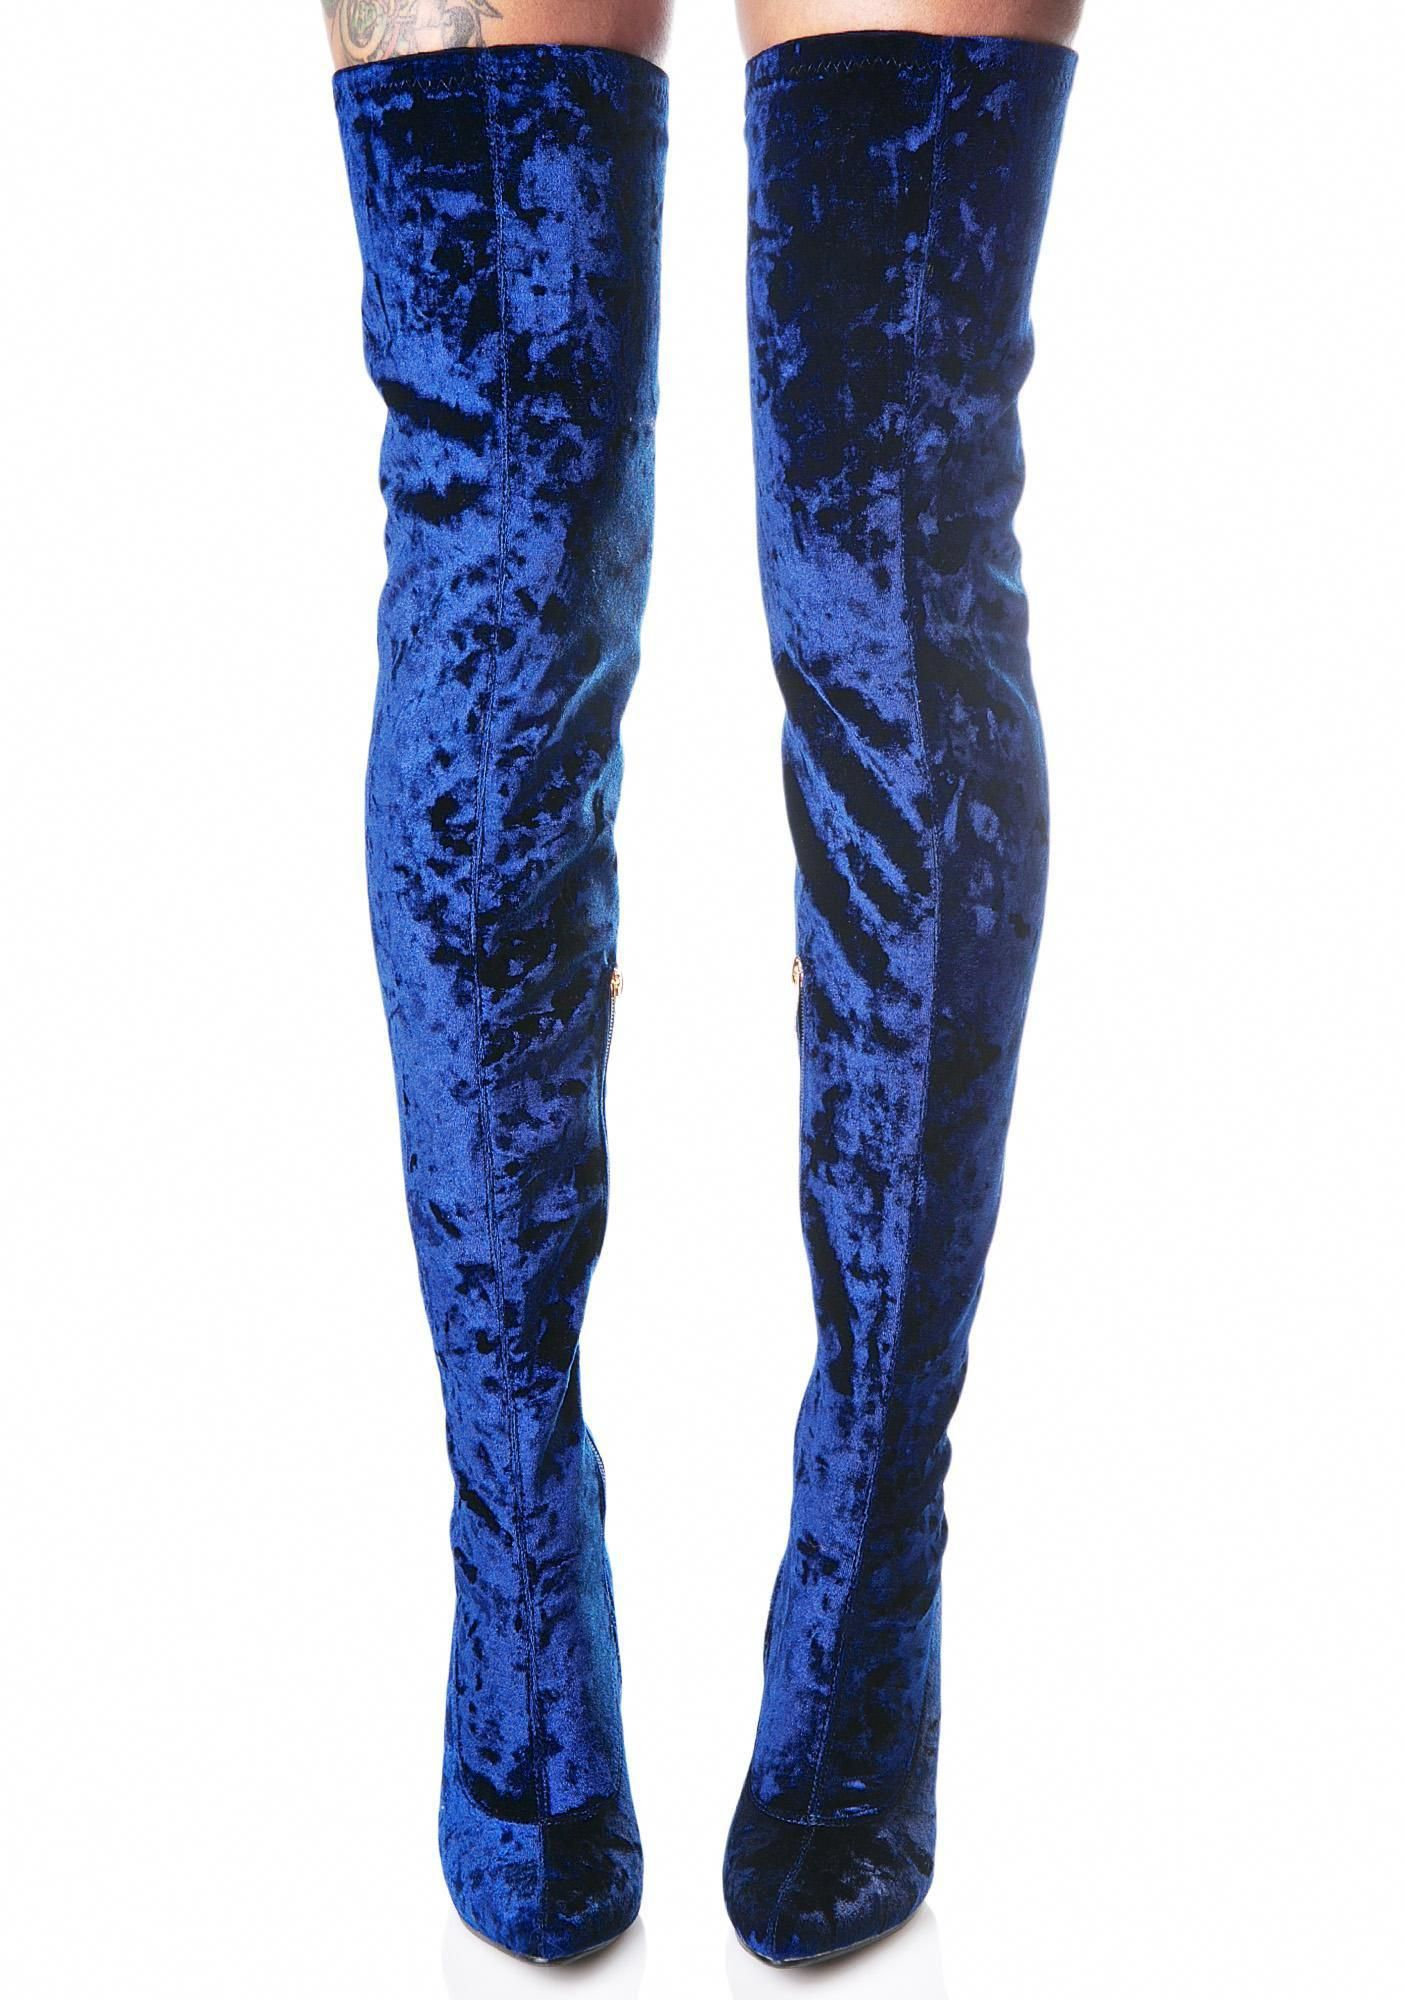 3e856e5db287b Planetary Thigh-High Boots are a vision of beauty across the galaxy, babe.  These ultra sexXxy thigh high boots feature a gorgeous crushed royal blue  velvet ...